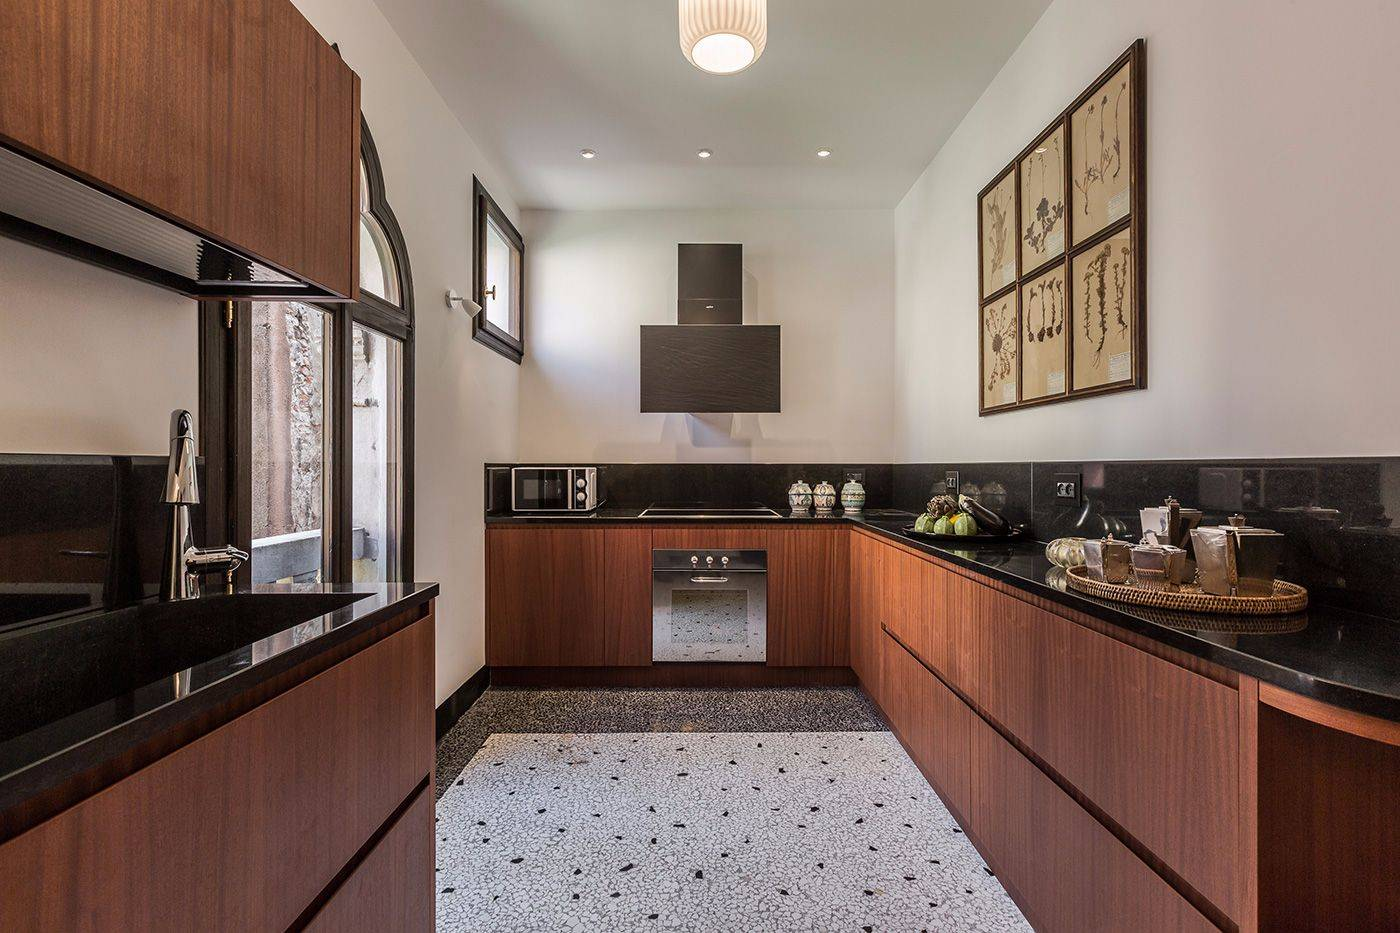 brand new, spacious and luxurious kitchen